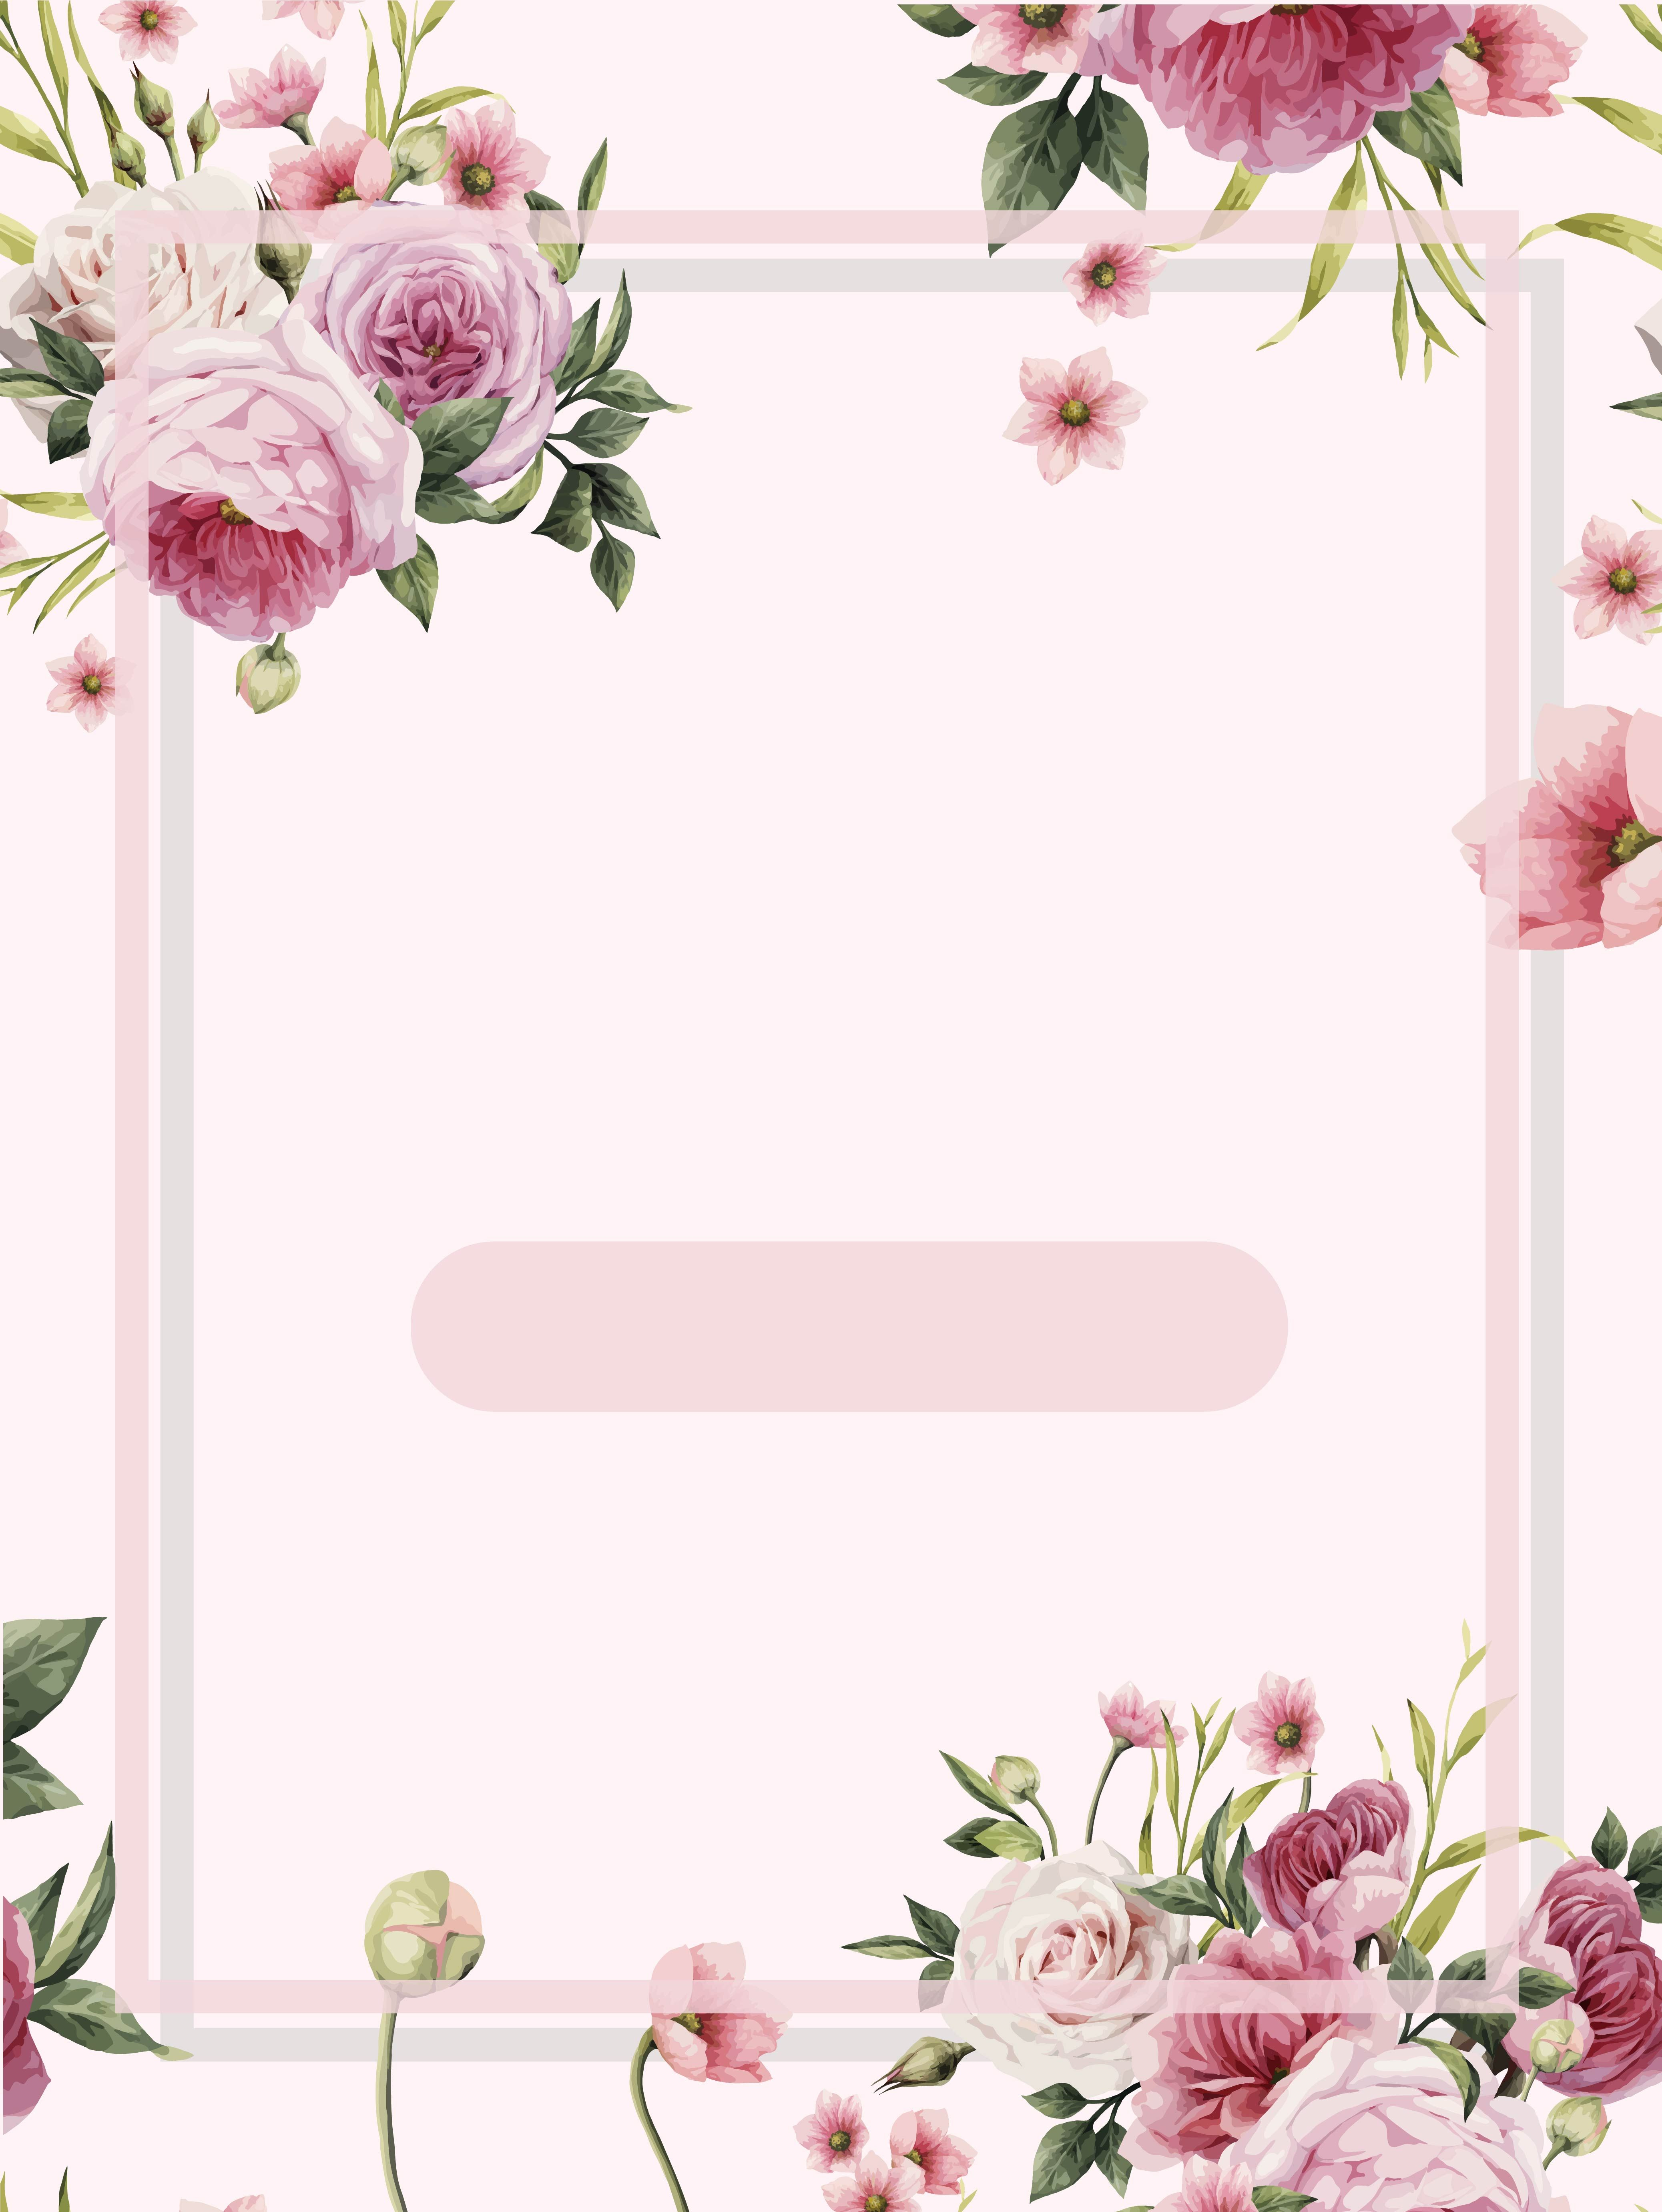 Pink Flowers Frame Watercolor Background Watercolor